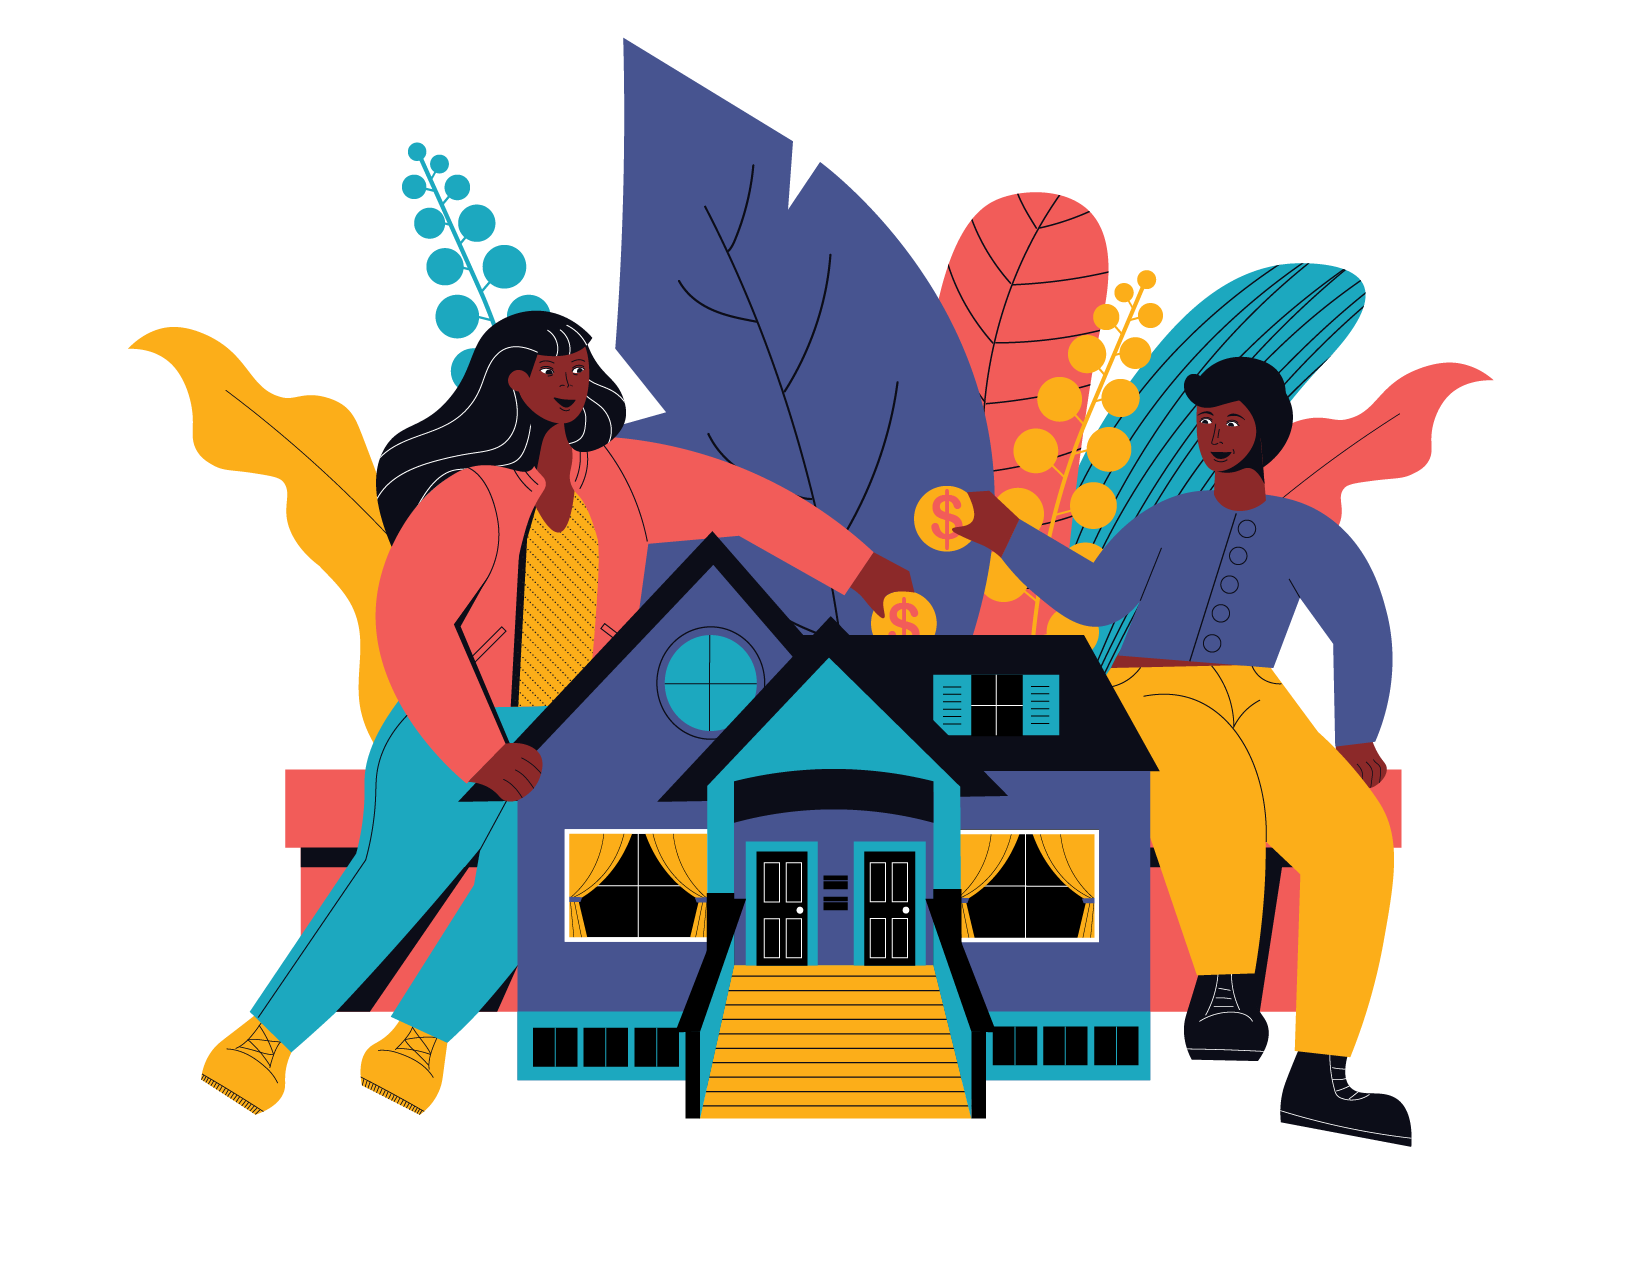 Ensure place-based inclusion, create resilient and equitable communities illustration